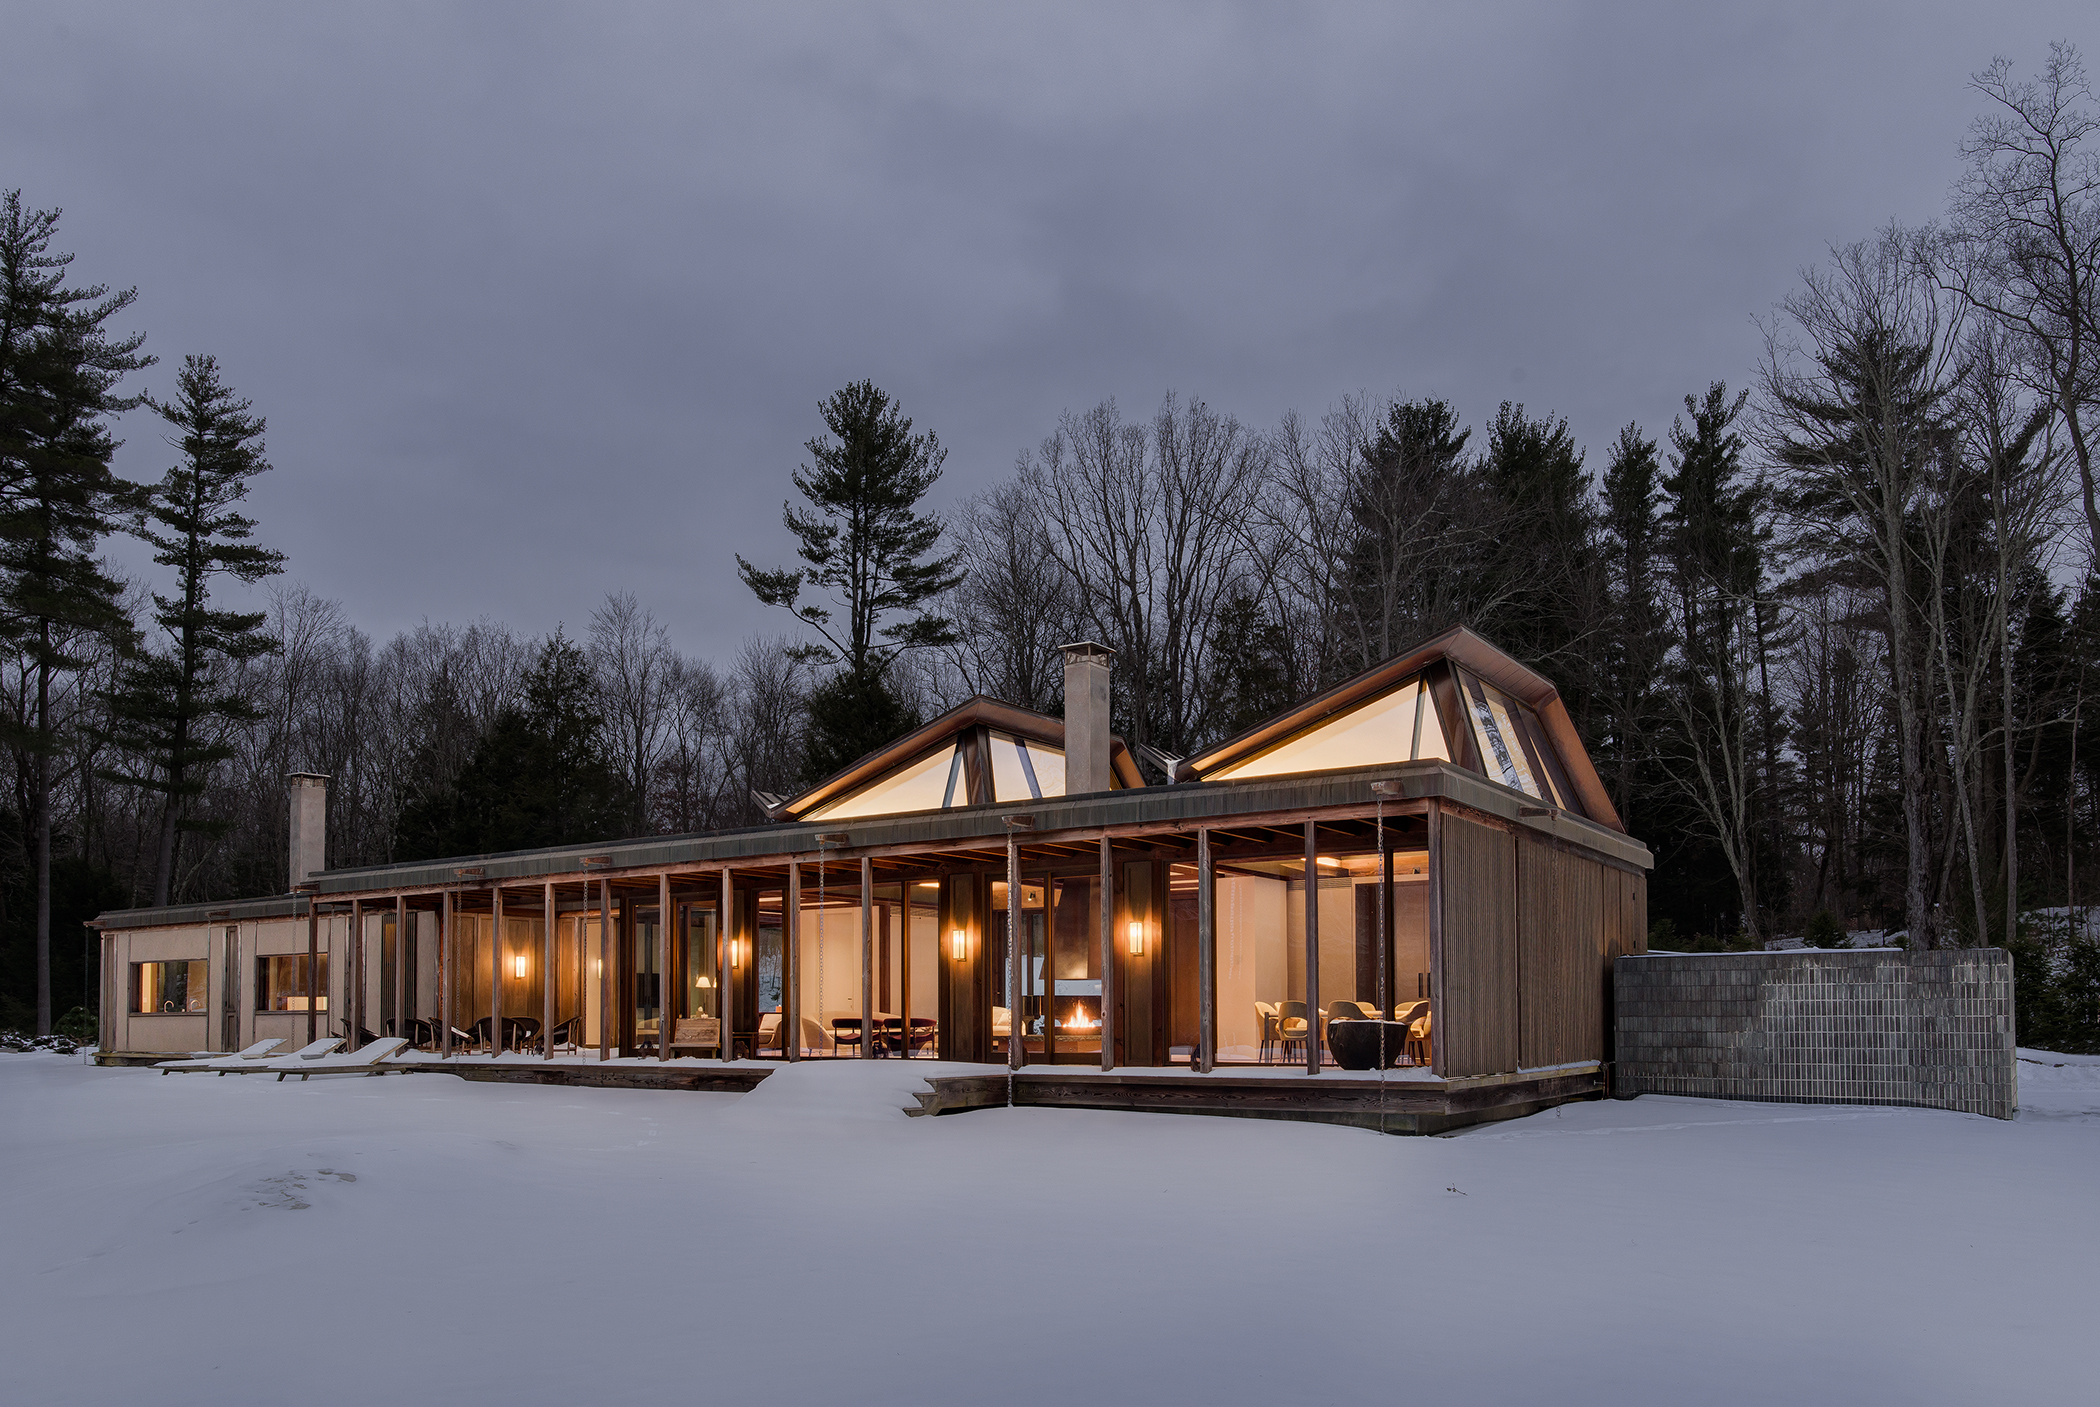 architectural record - Record Houses: Idyll in the Wild, May 2018